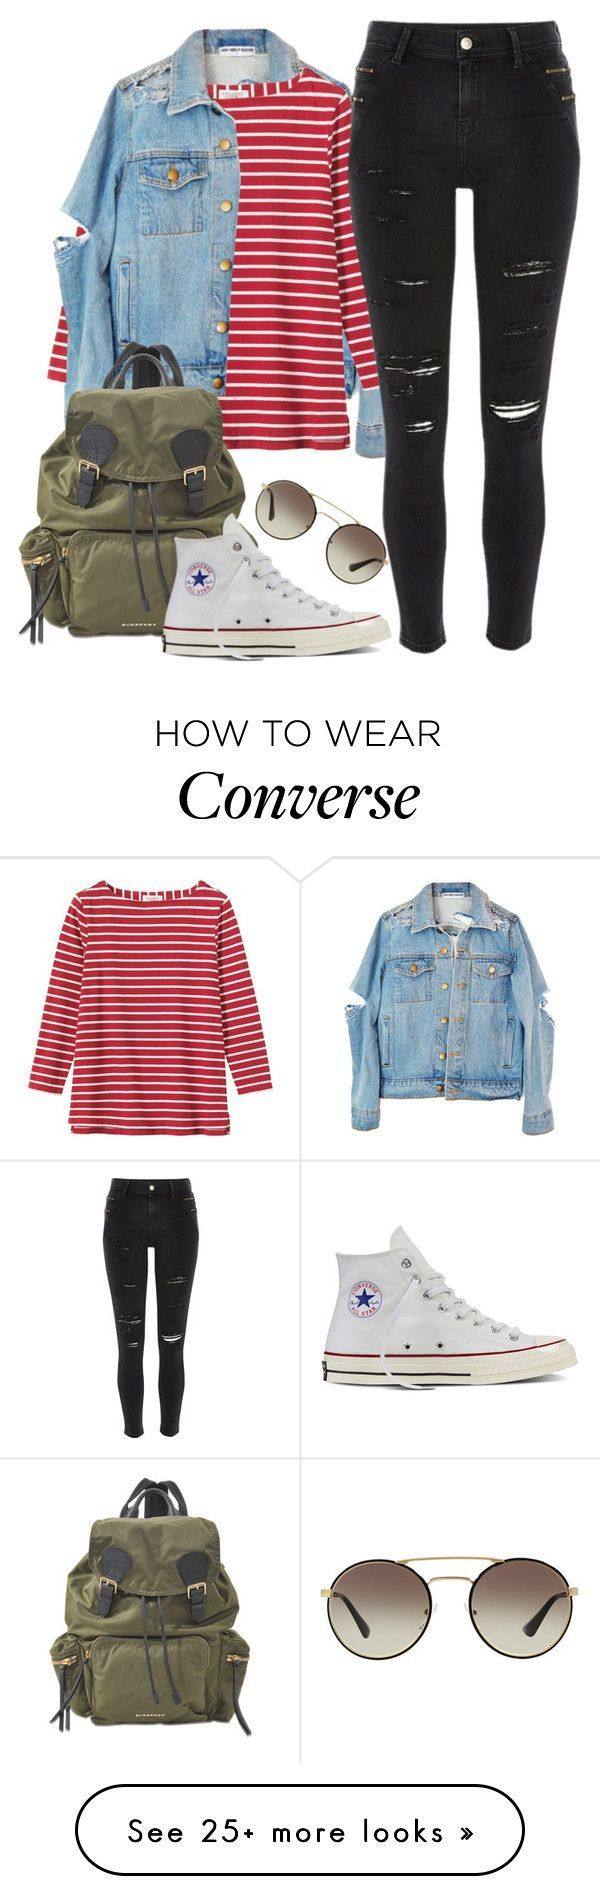 """Untitled #535"" by yhani on Polyvore featuring Toast, Burberry, Converse, Prada and River Island"